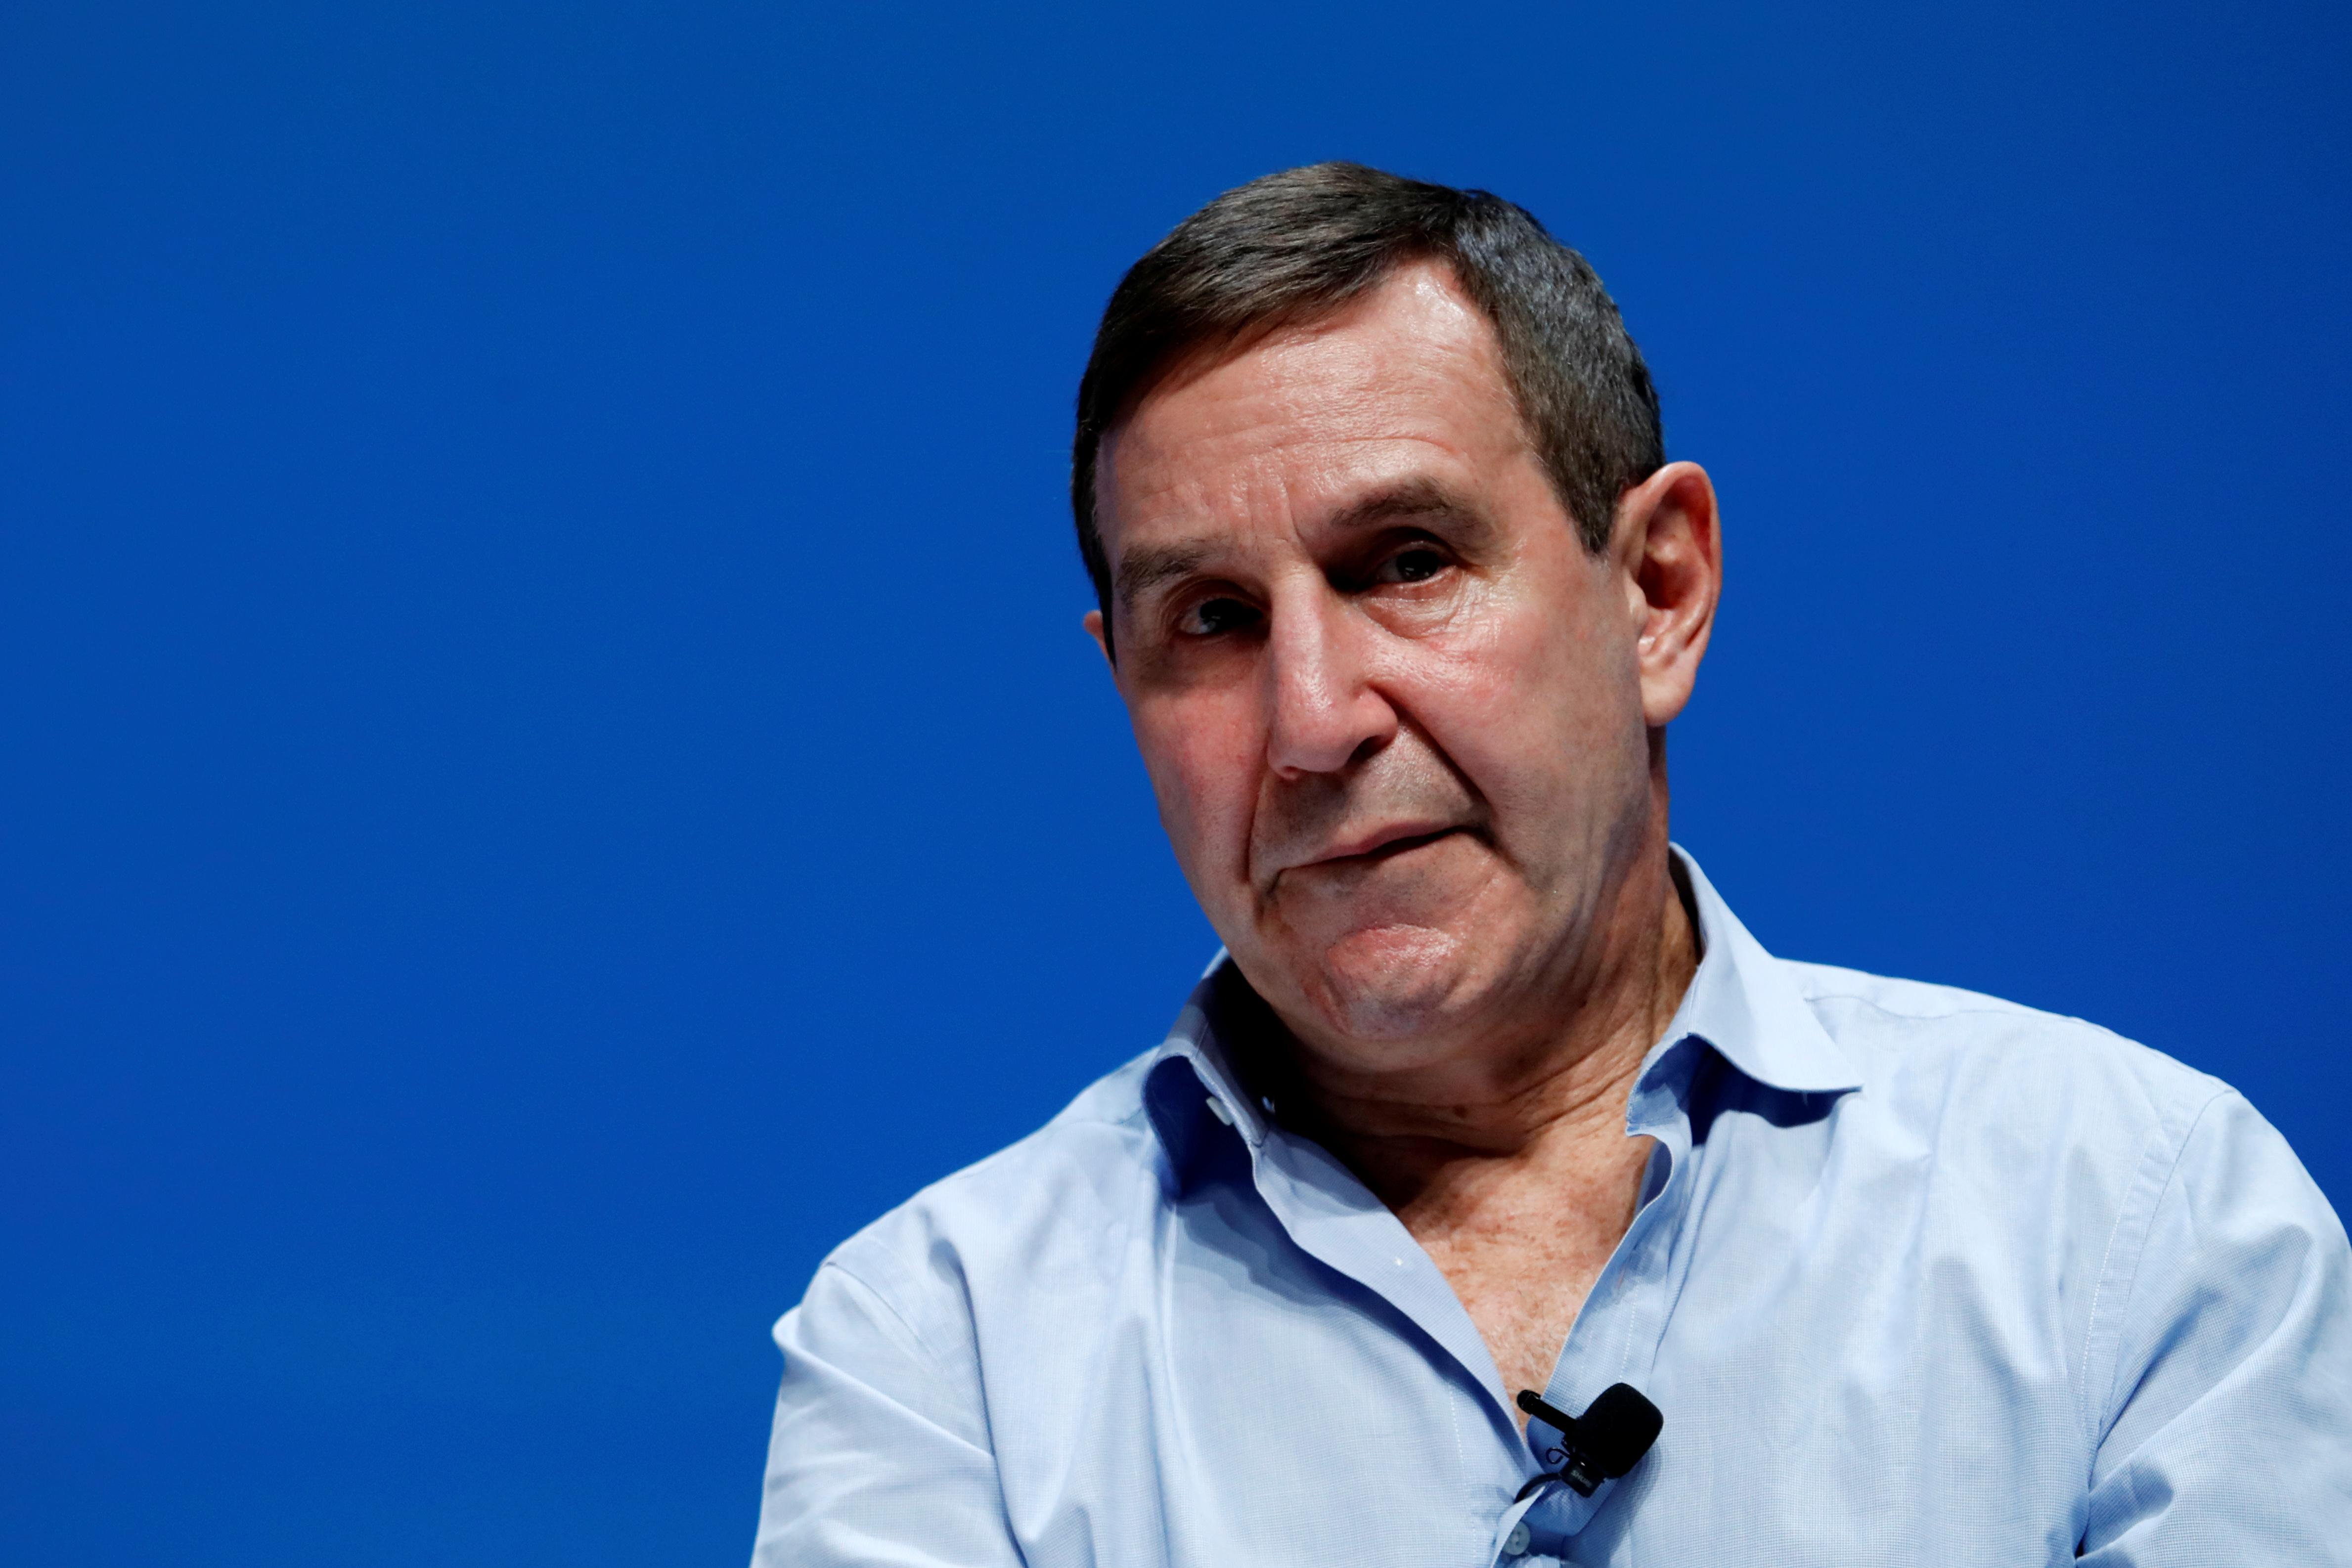 Edelman CEO: Every company has to become its 'own media company'